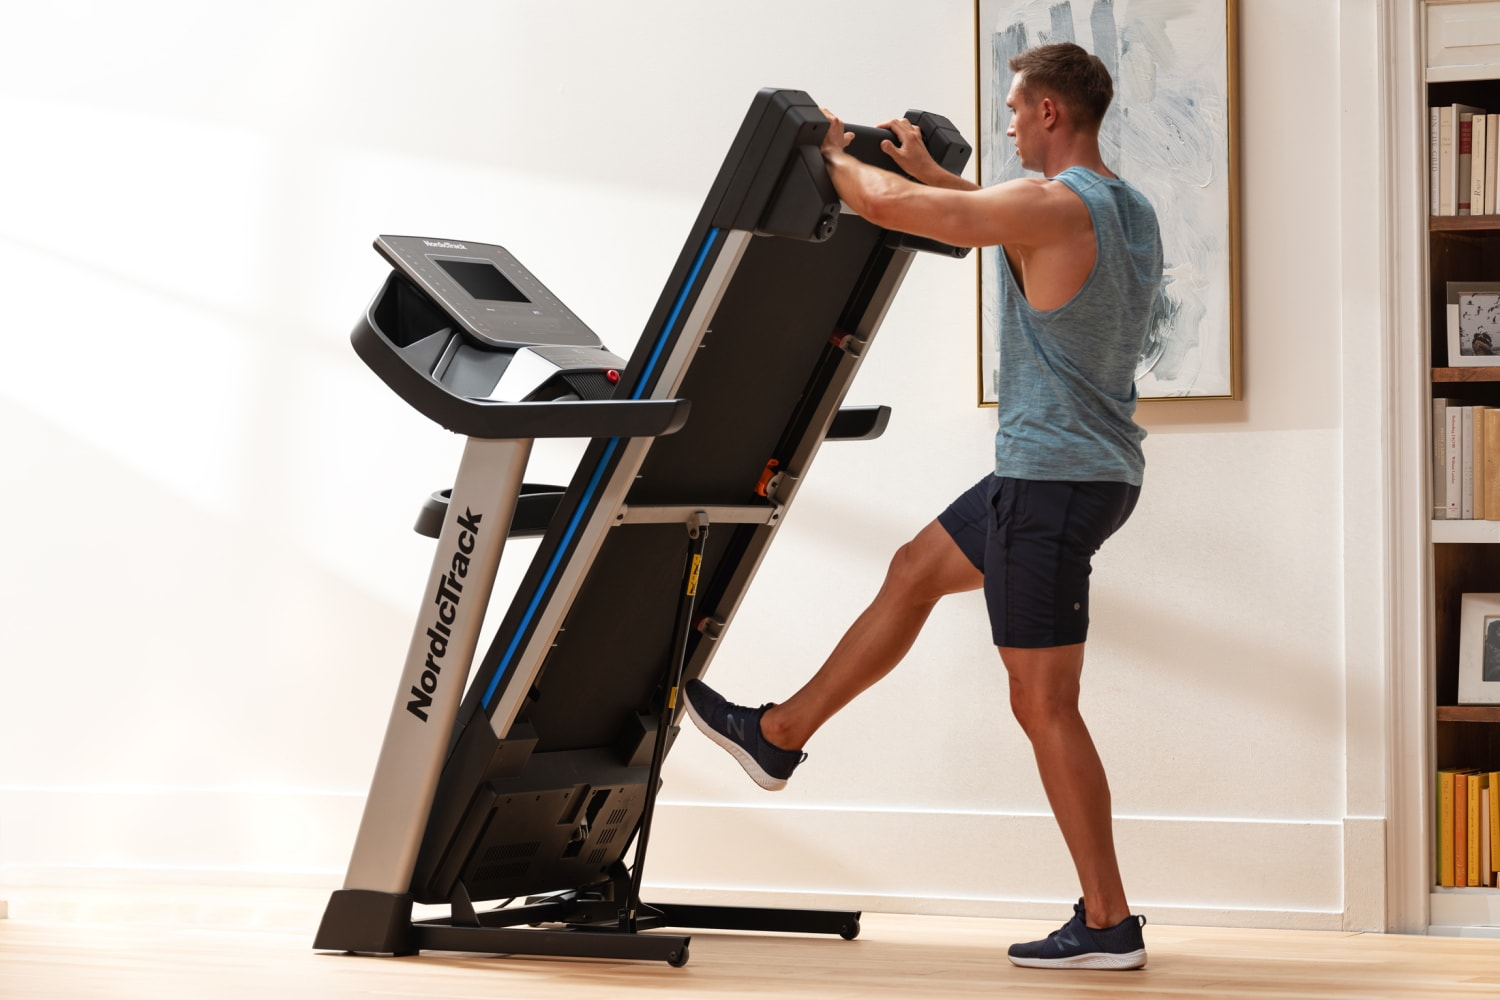 How to Store Your Treadmill - Easy Treadmill Maintenance Tips at Home